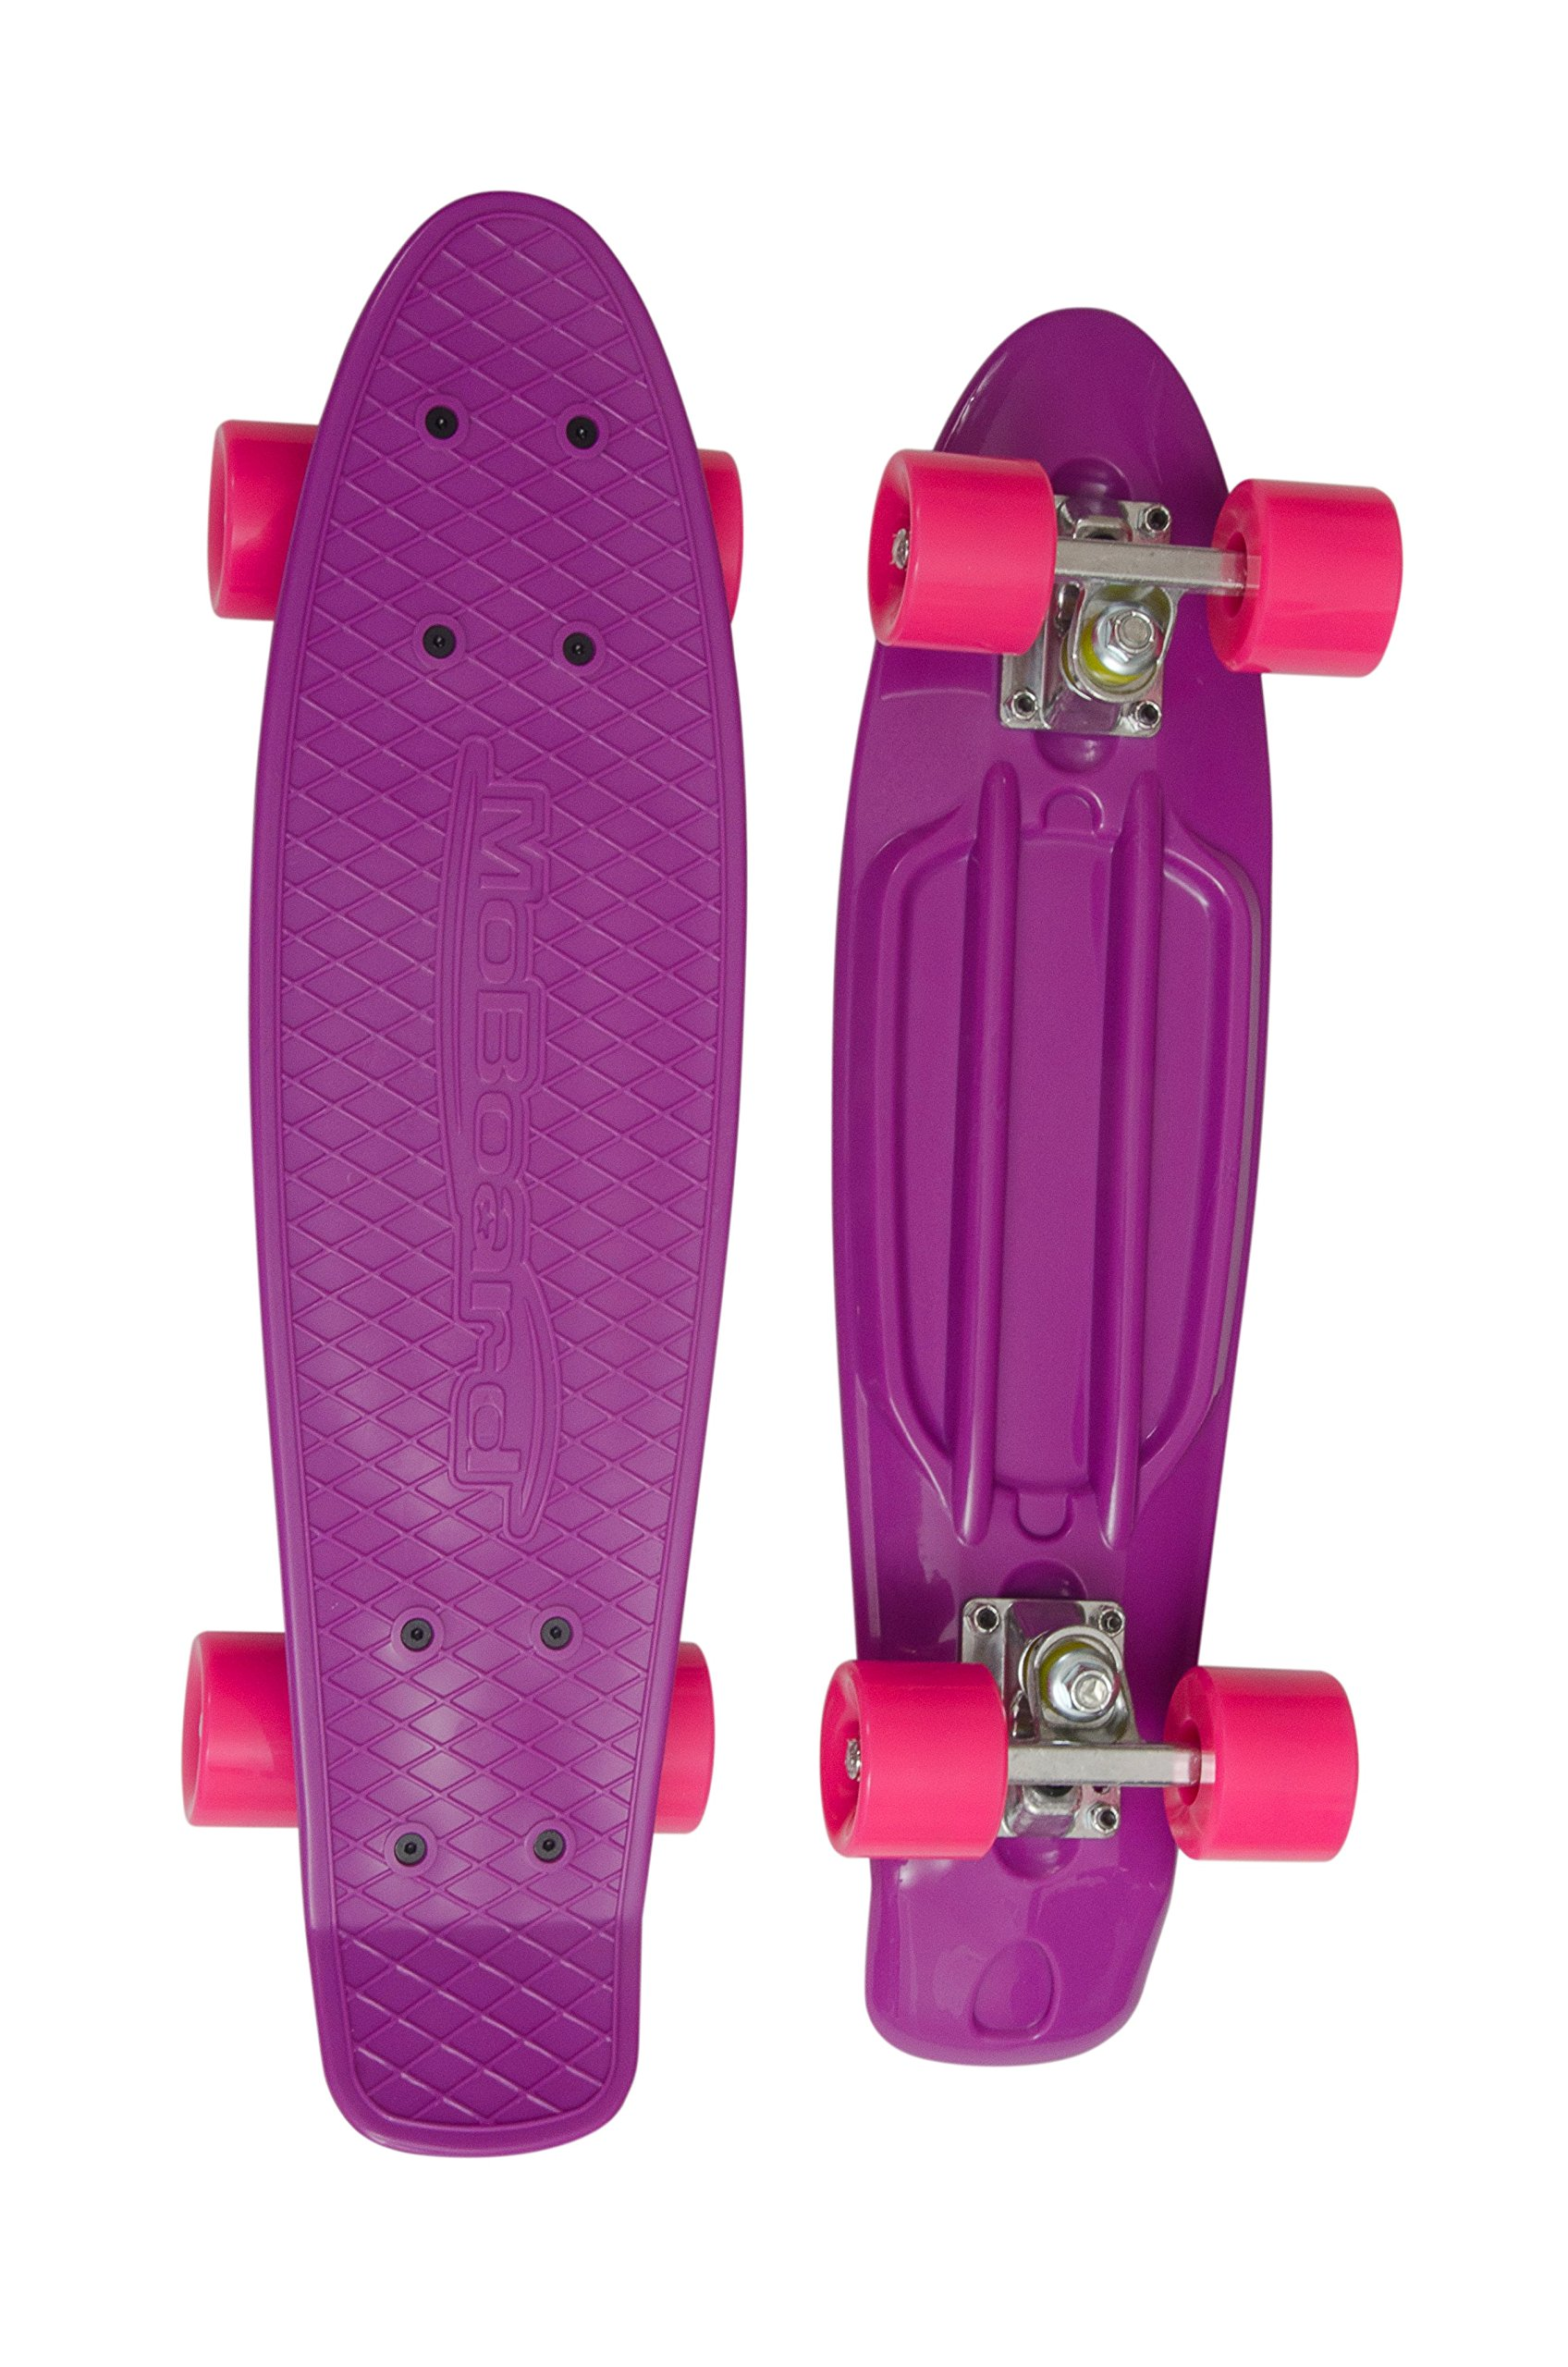 MoBoard Graphic Complete Skateboard | Pro/Beginner | 22 inch Vintage Style with Interchangeable Wheels (Purple/Pink)